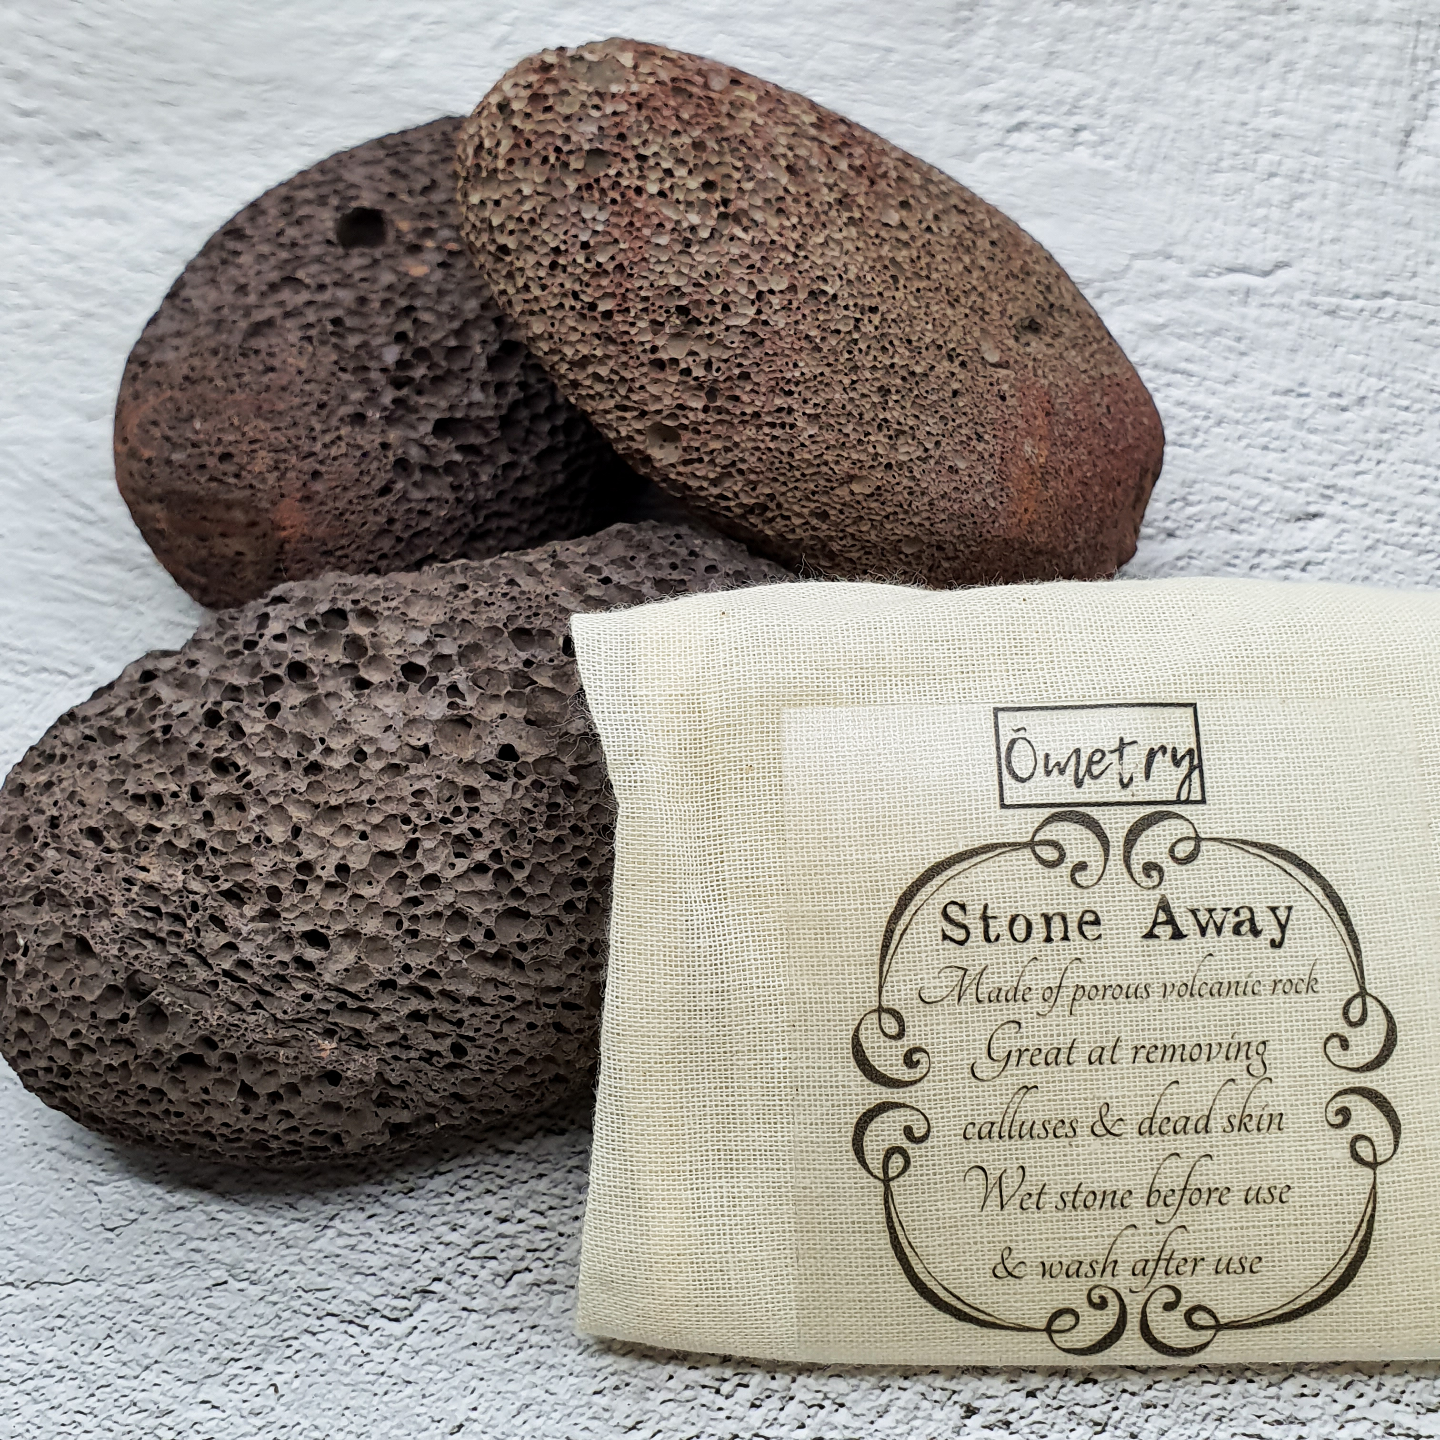 A light brown drawstring pouch with the words Ometry printed above and Stone away printed below.